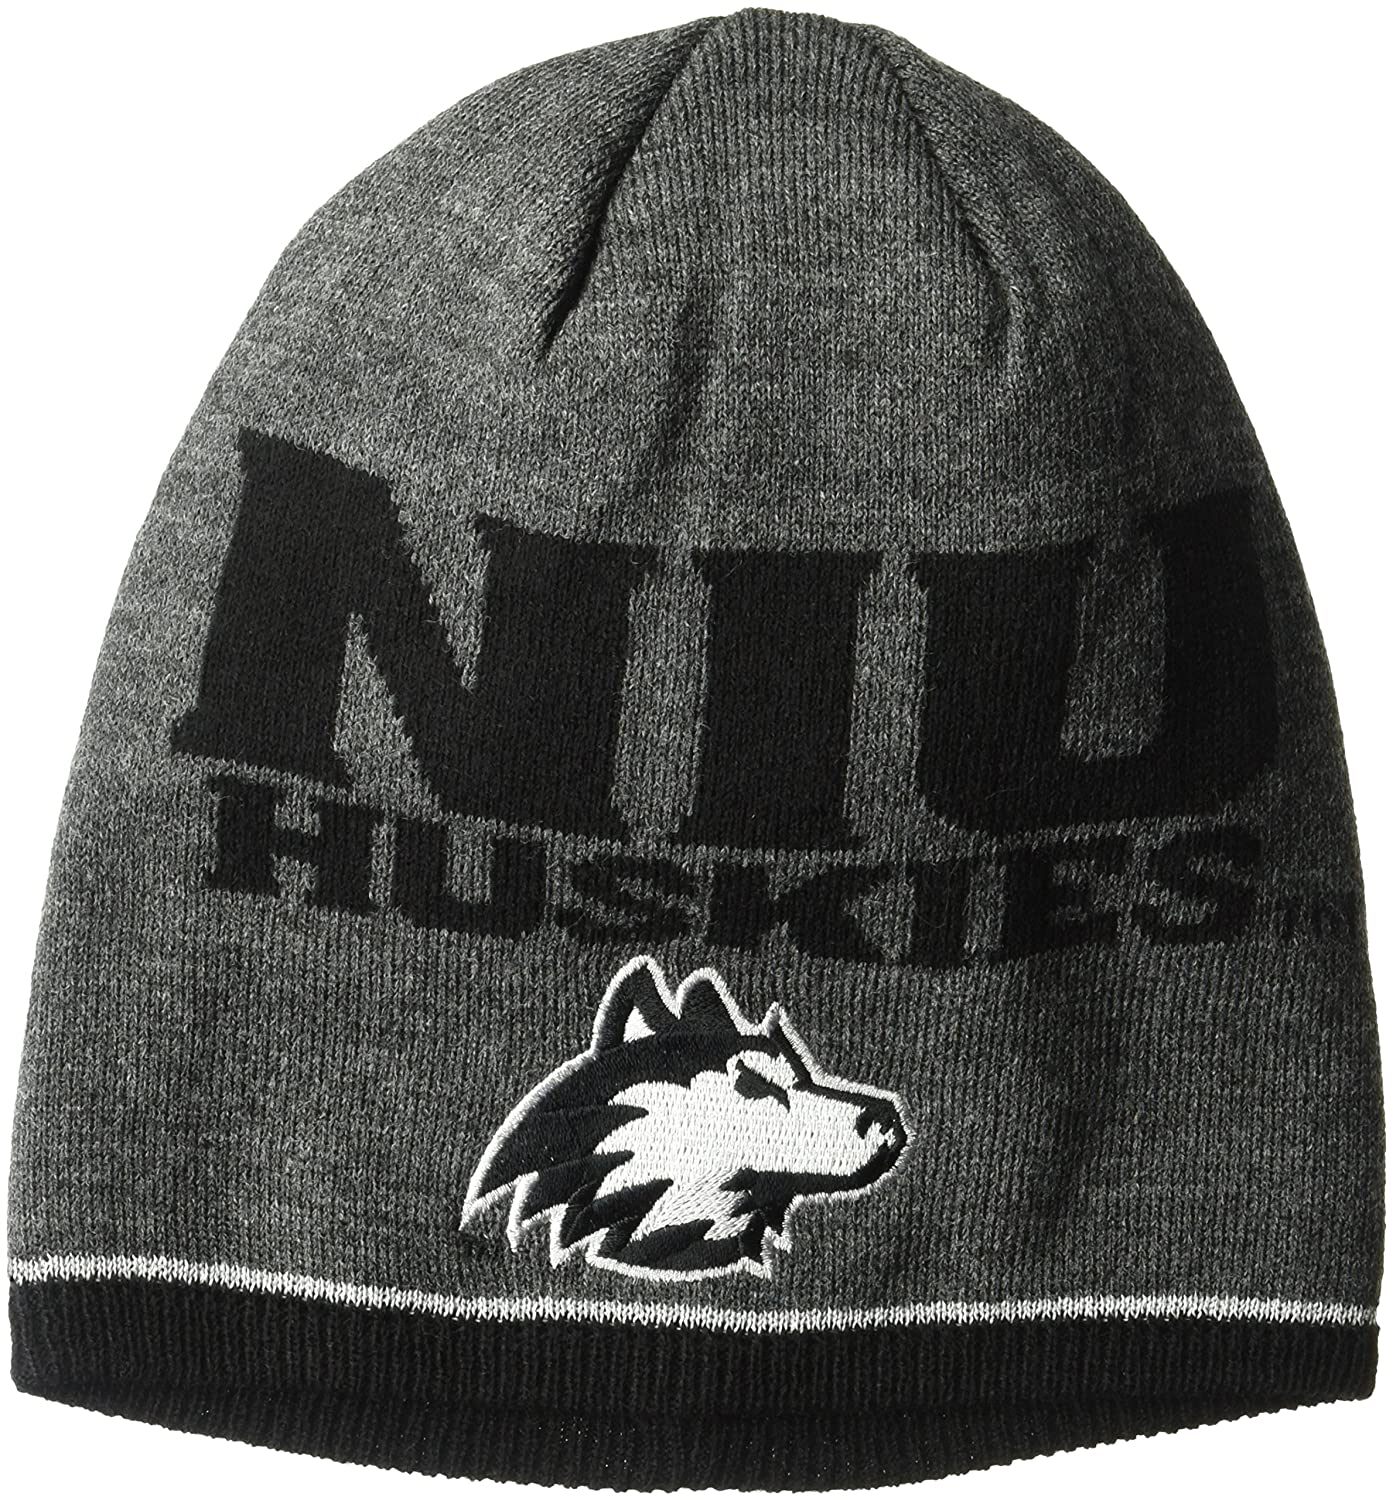 NCAA Playerビーニー B073WV6JQB One Size|グレー|Northern Illinois Huskies グレー One Size